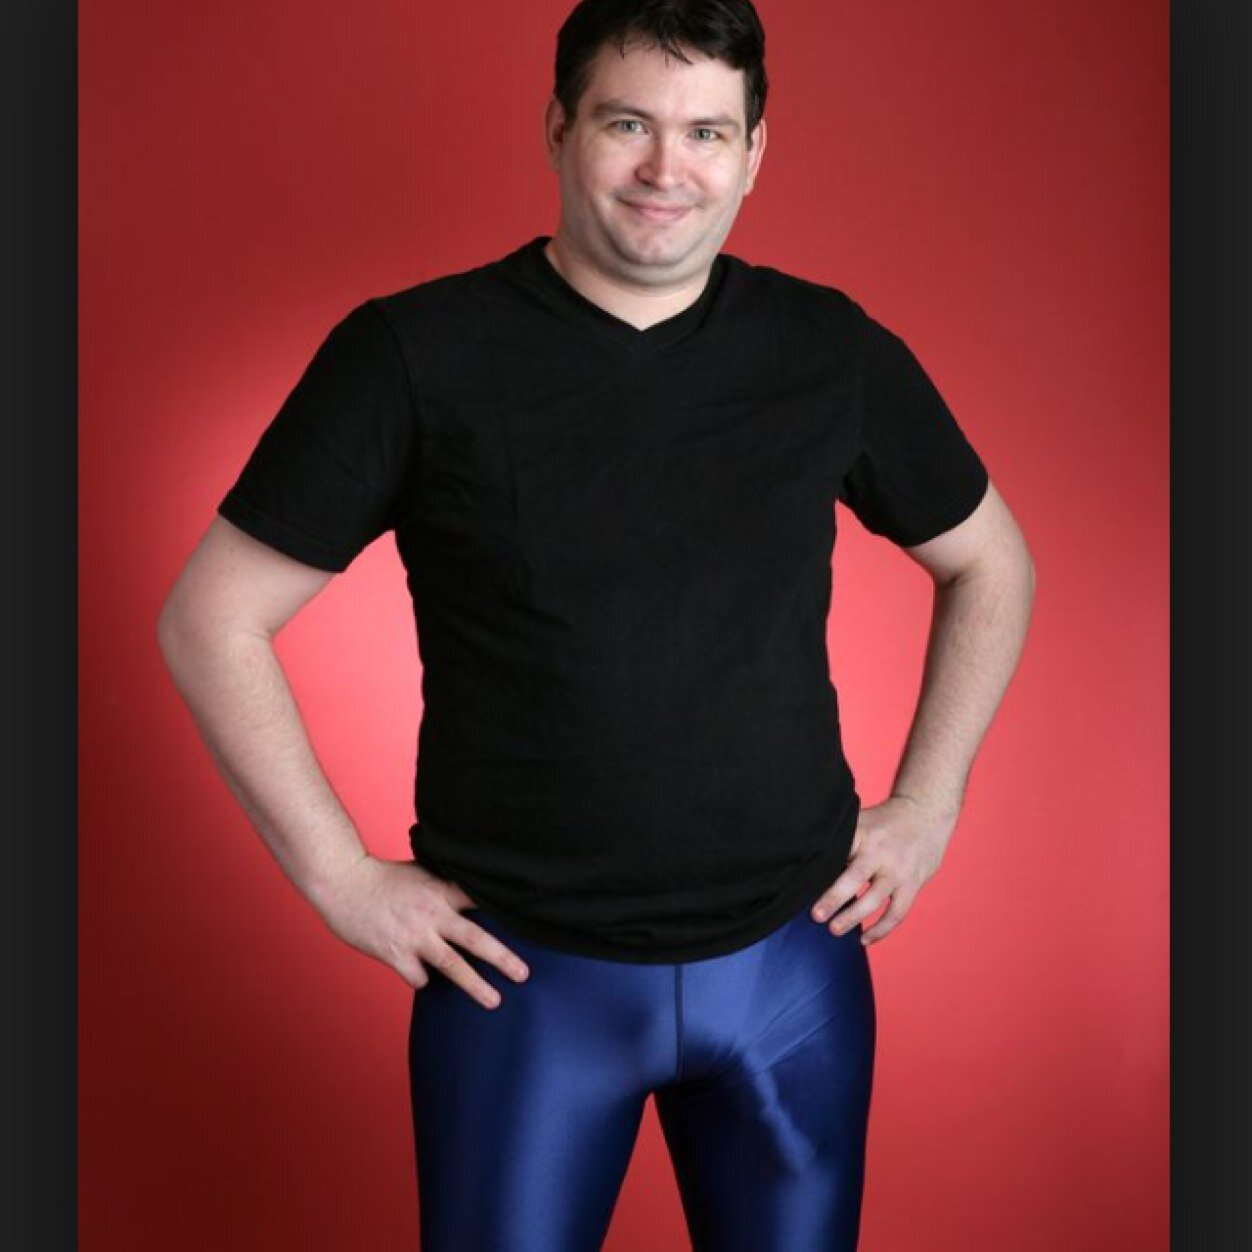 jonah falcon big dick Jonah Cardeli Falcon (born in 1970) is a talk show host, actor and writer.